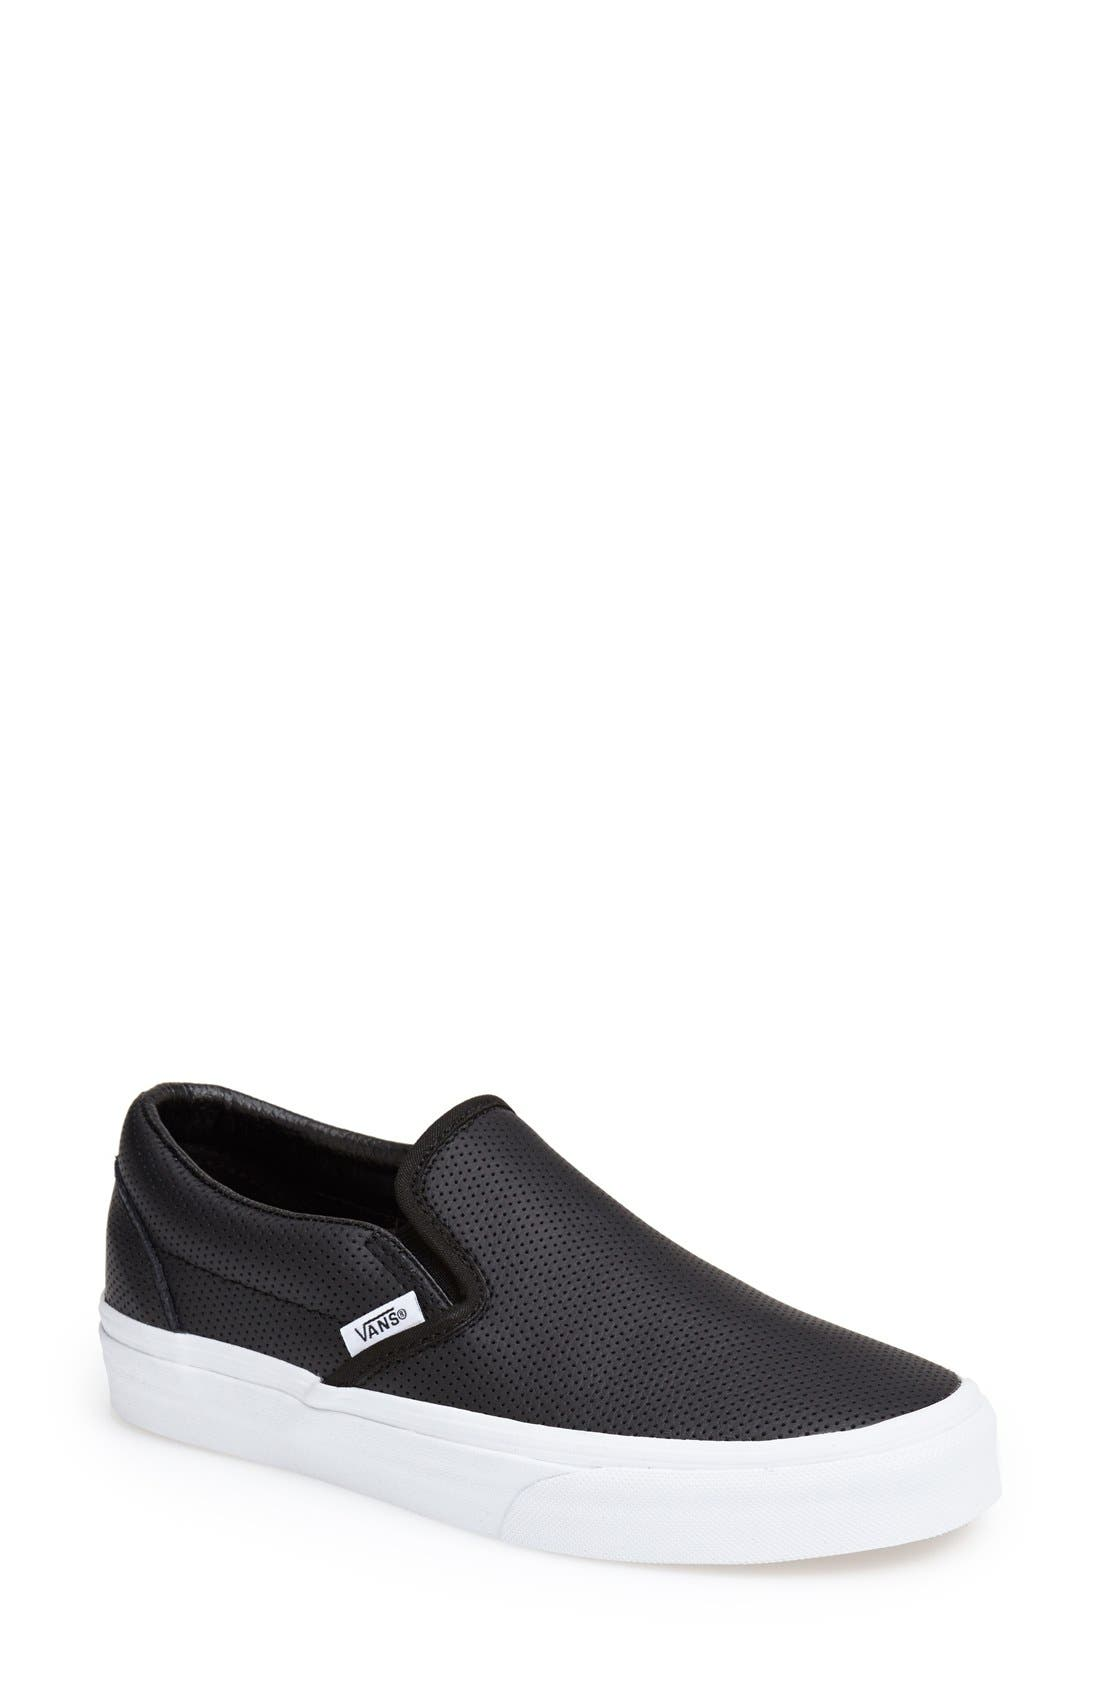 vans slip on price